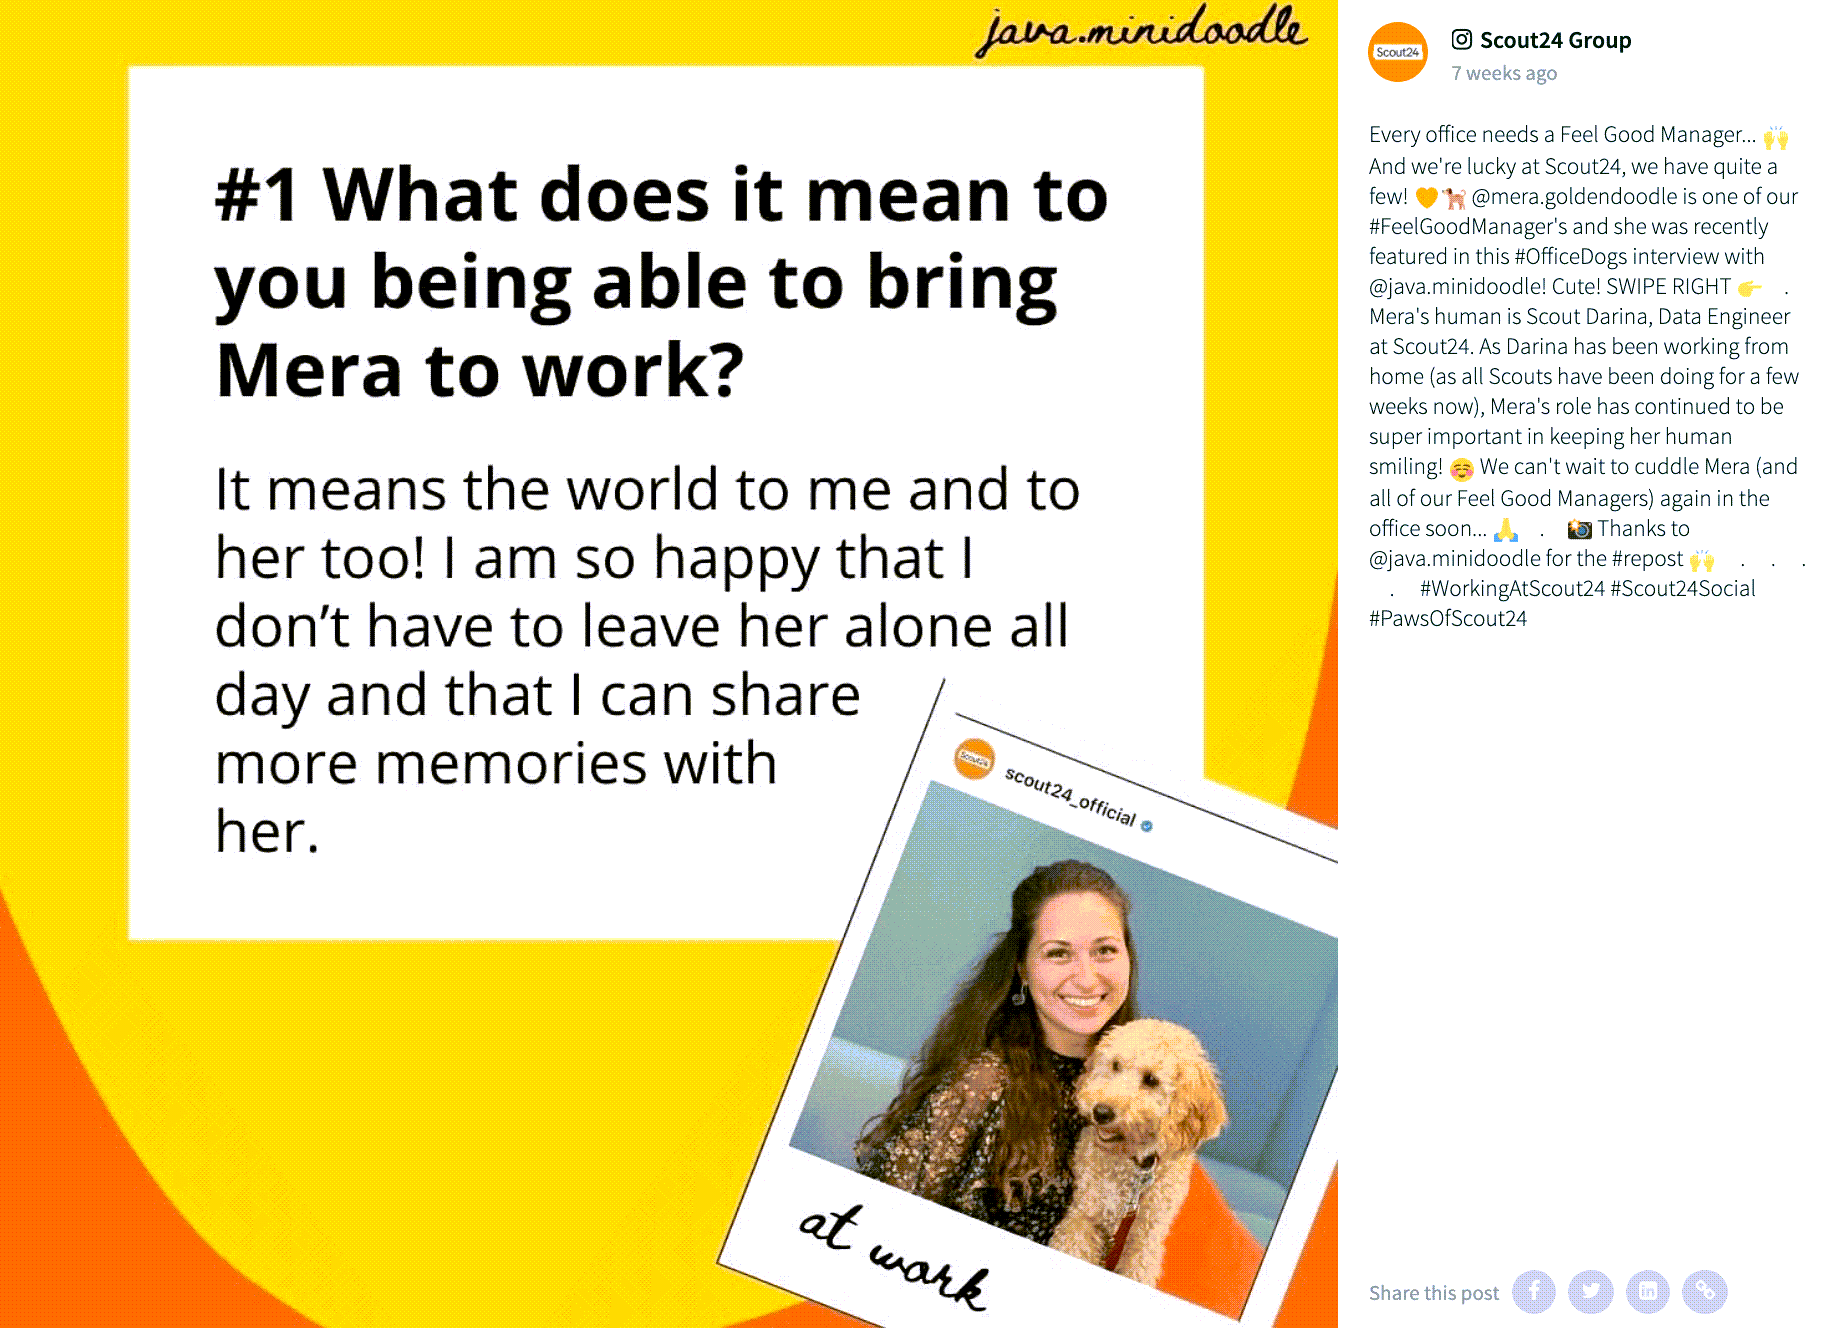 "Instagram post by Scout24 Group. The image shows a field with the following question and answer: ""#1 What does it mean to you being able to bring Mera to work?"" ""It means the world to me and to her too! I am so happy that I don't have to leave her alone all day and that I can share more memories with her."" Overlaid at the bottom right is a polaroid-style image of a smiling person with long hair who is holding a golden labradoodle dog. At the bottom of the polaroid it says ""at work"".  The post's caption reads: Every office needs a Feel Good Manager... 🙌 And we're lucky at Scout24, we have quite a few! 🧡🐕 @mera.goldendoodle is one of our #FeelGoodManager's and she was recently featured in this #OfficeDogs interview with @java.minidoodle! Cute! SWIPE RIGHT 👉⠀ .⠀ Mera's human is Scout Darina, Data Engineer at Scout24. As Darina has been working from home (as all Scouts have been doing for a few weeks now), Mera's role has continued to be super important in keeping her human smiling! ☺️ We can't wait to cuddle Mera (and all of our Feel Good Managers) again in the office soon... 🙏⠀ .⠀ 📸 Thanks to @java.minidoodle for the #repost 🙌 ⠀ . ⠀ . ⠀ . ⠀ . ⠀ #WorkingAtScout24 #Scout24Social #PawsOfScout24⠀"